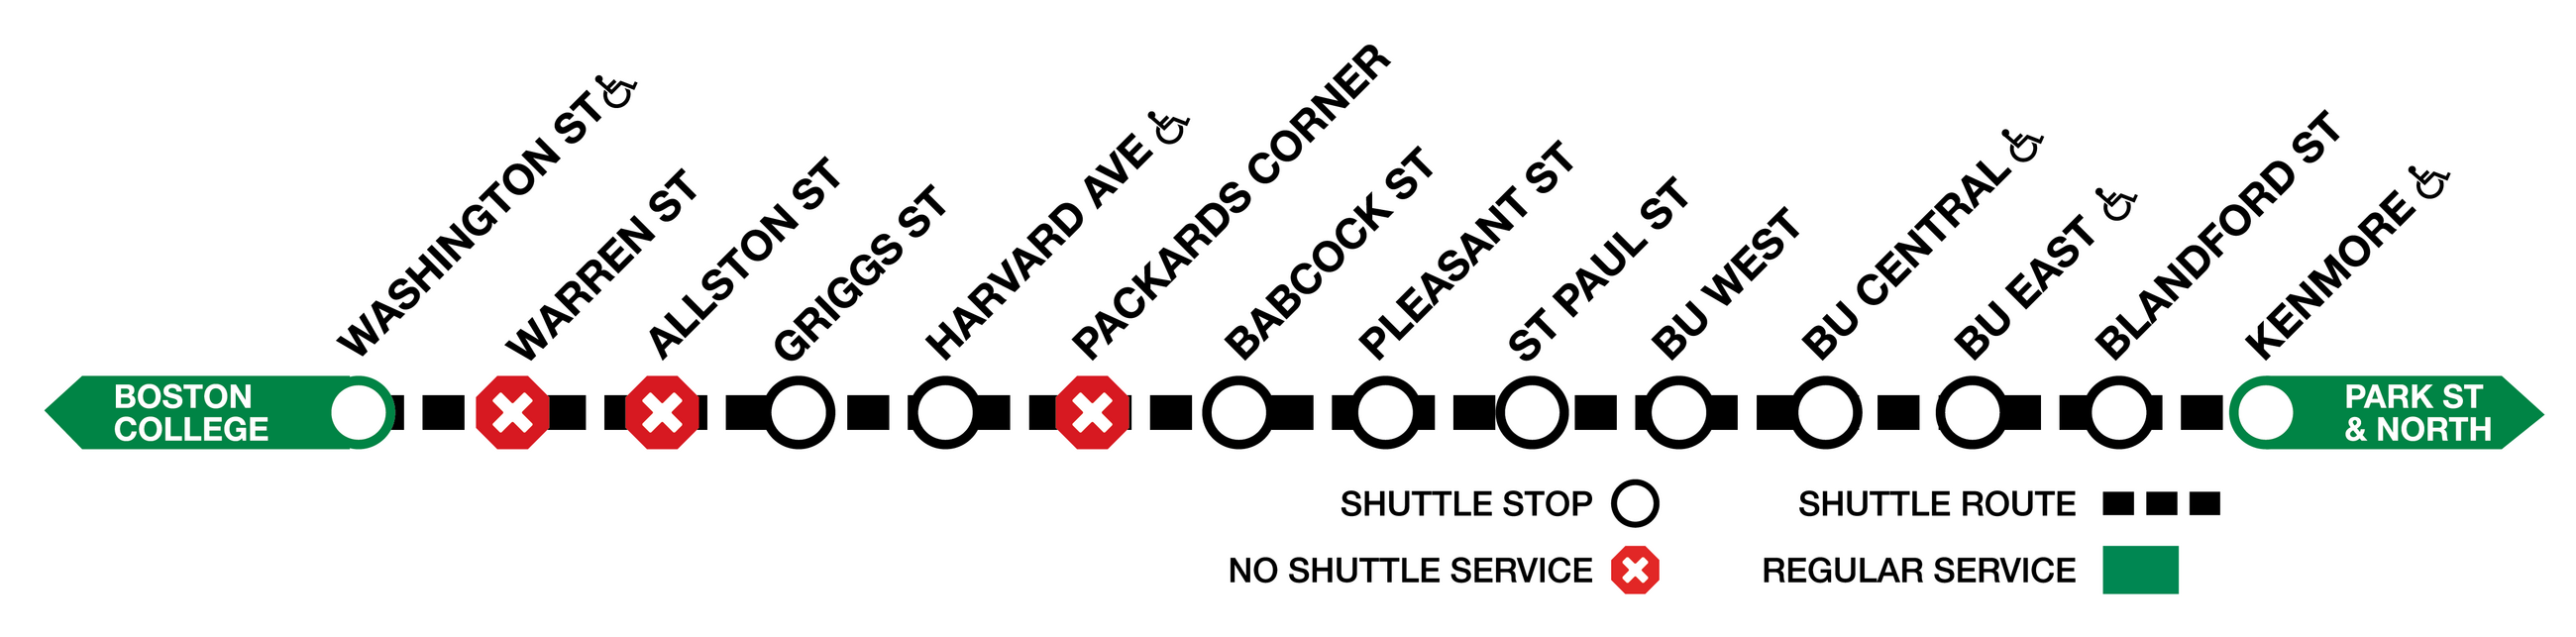 This graphic shows shuttle buses replacing trains between Kenmore and Washington Street with no service at Warren Street, Allston Street, or Packards Corner.